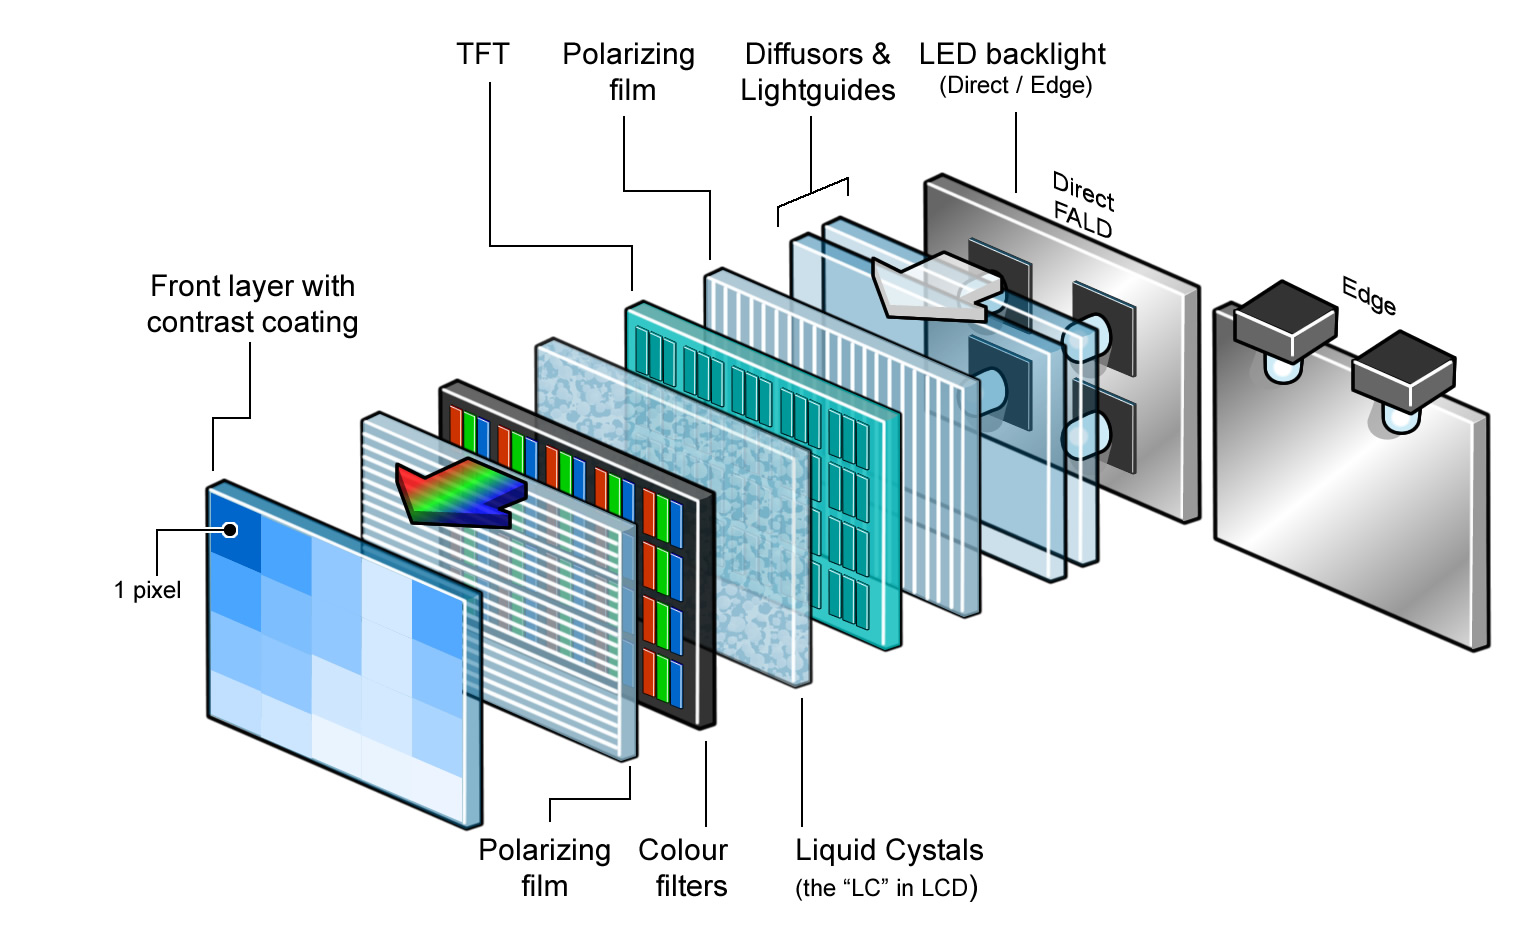 Oled Vs Lcd Flatpanelshd Contrast Control For Lcds Construction